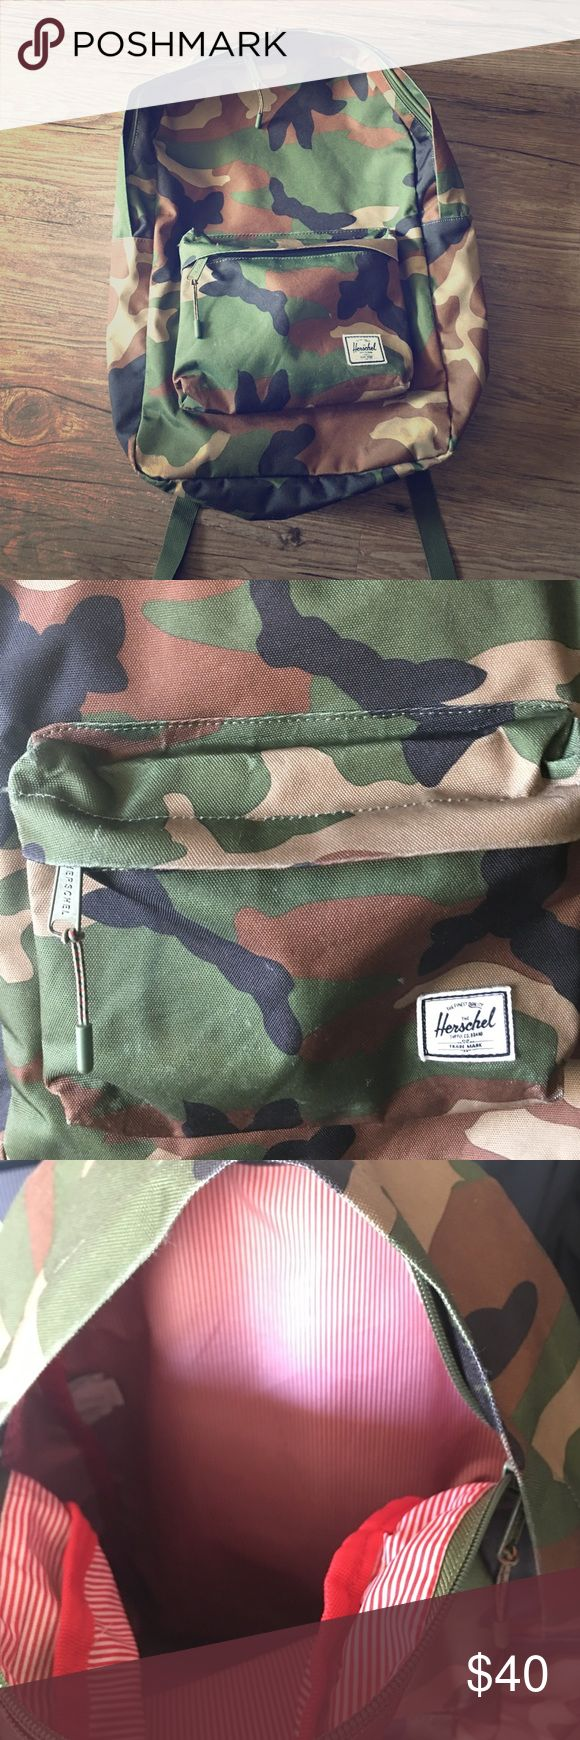 """Herschel Camo Bookbag DETAILS The Herschel Classic™ backpack stays true to its timeless design, offering a clean and simple silhouette that is perfectly tailored to fit your style.  Signature striped fabric liner Front storage pocket Prusik cord zipper pulls Classic woven label DIMENSIONS 18""""(H) x 12.25""""(W) x 5""""(D), 22L Bags Backpacks"""